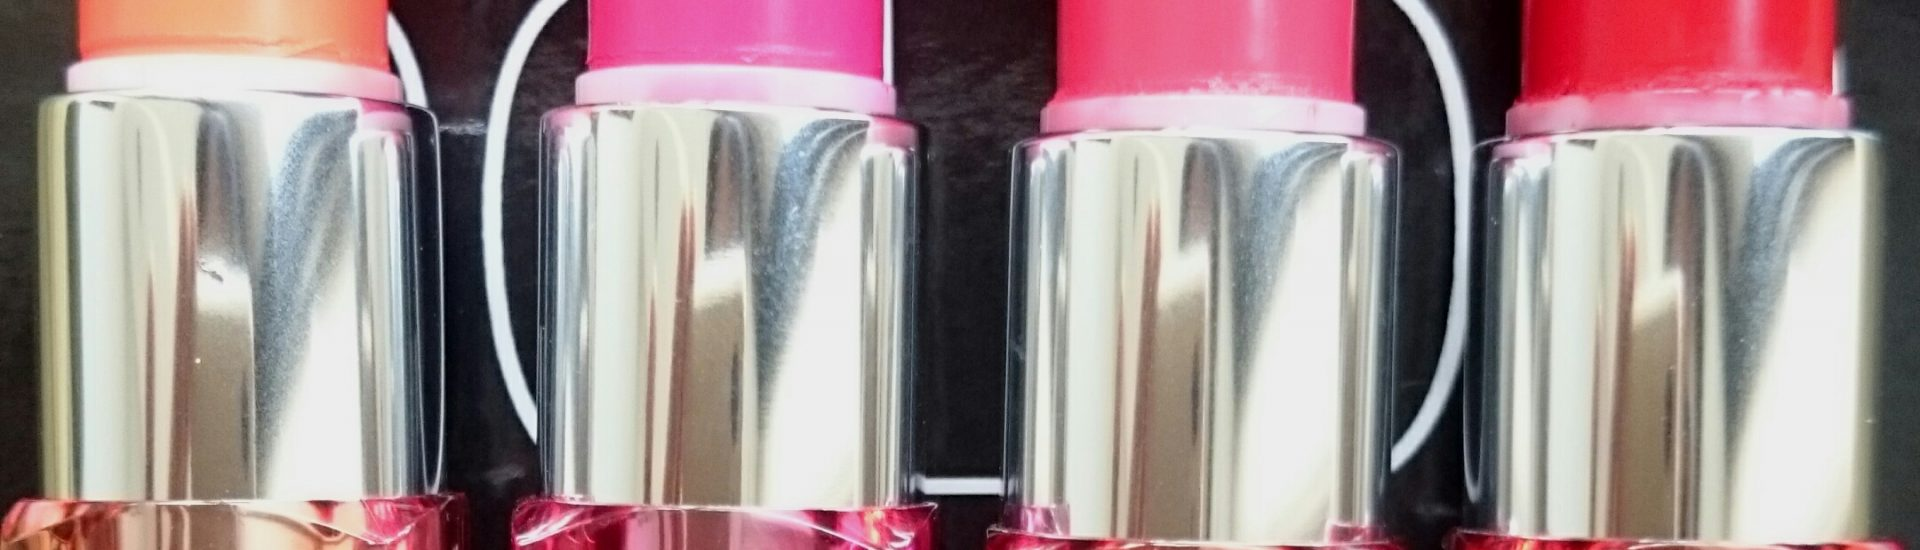 Maybelline Color Show lipsticks in Orange Icon, Fuschia Flare, Cherry Crush and Red Rush - review and swatches